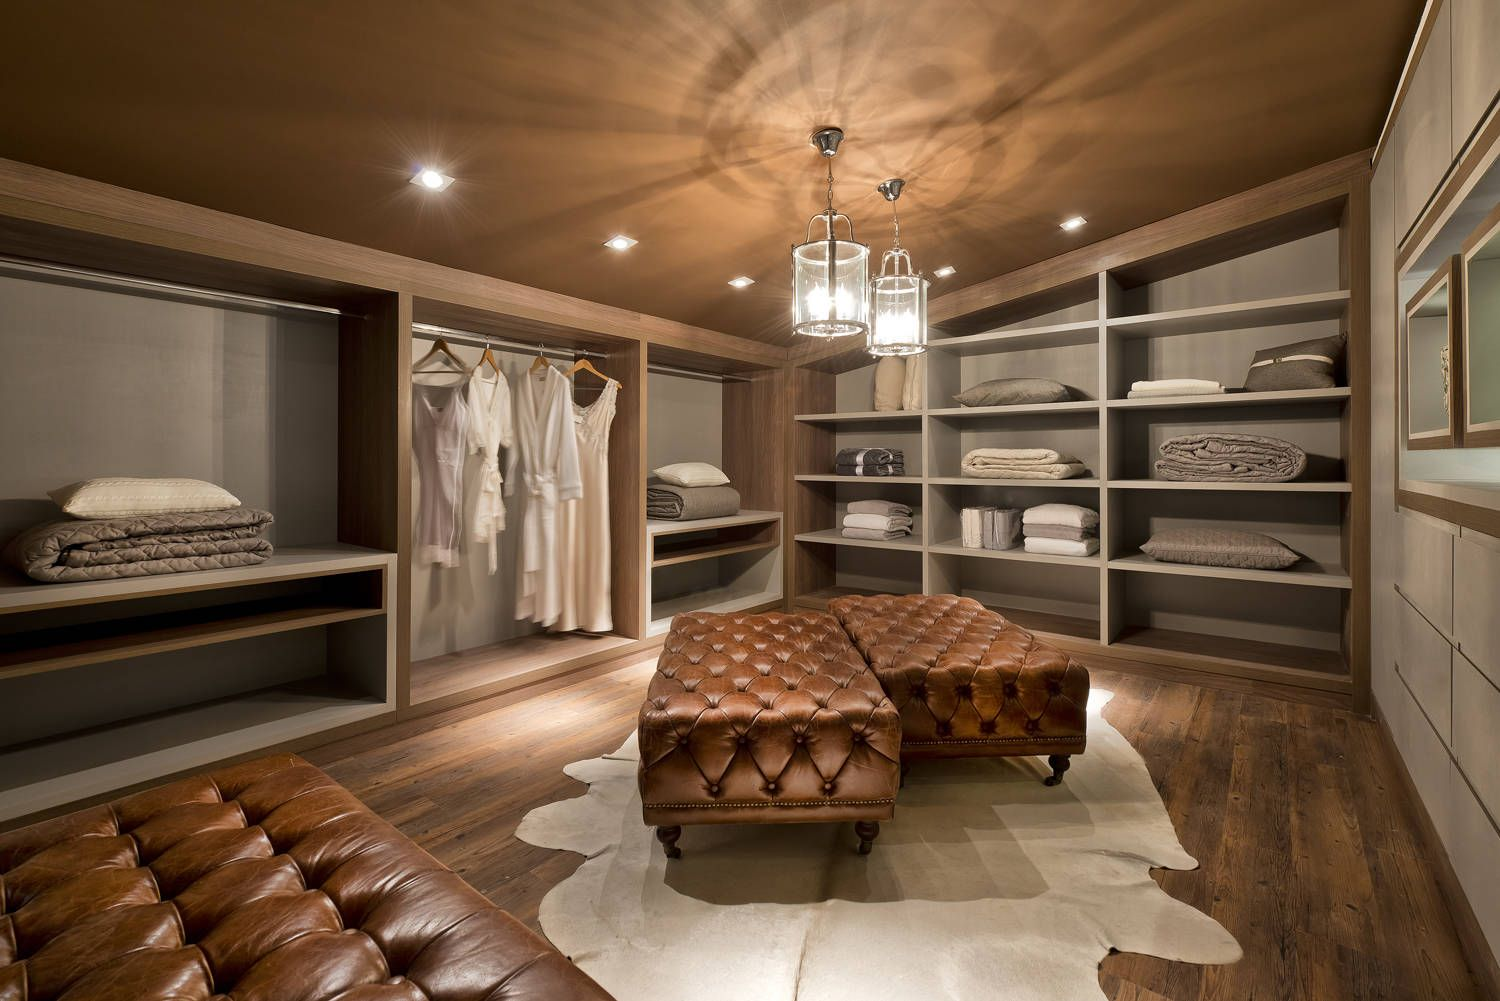 Fotos De Decoraci N Y Dise O De Interiores Closet Space